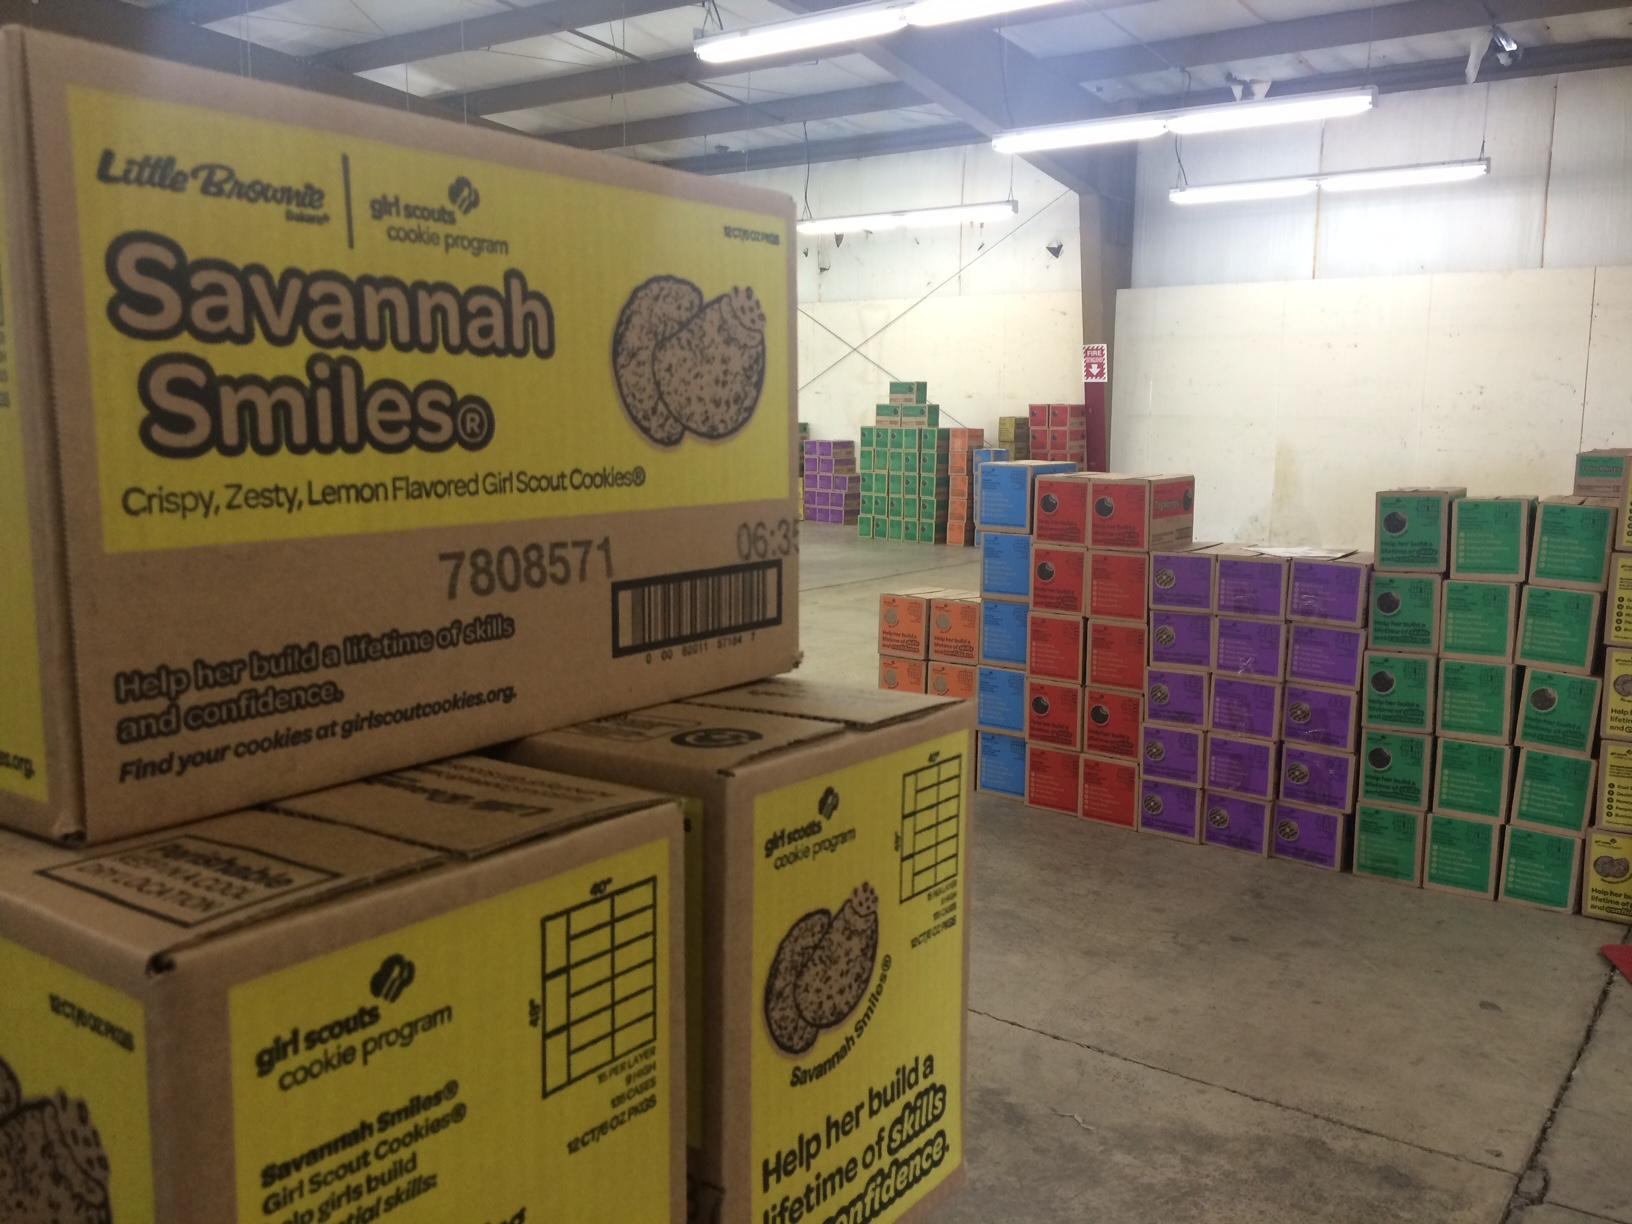 On Thursday, troops in Springfield unloaded more than 21,000 cases of cookies to a warehouse on Gateway. The boxes will be distributed to 14 troops in Springfield. (SBG)